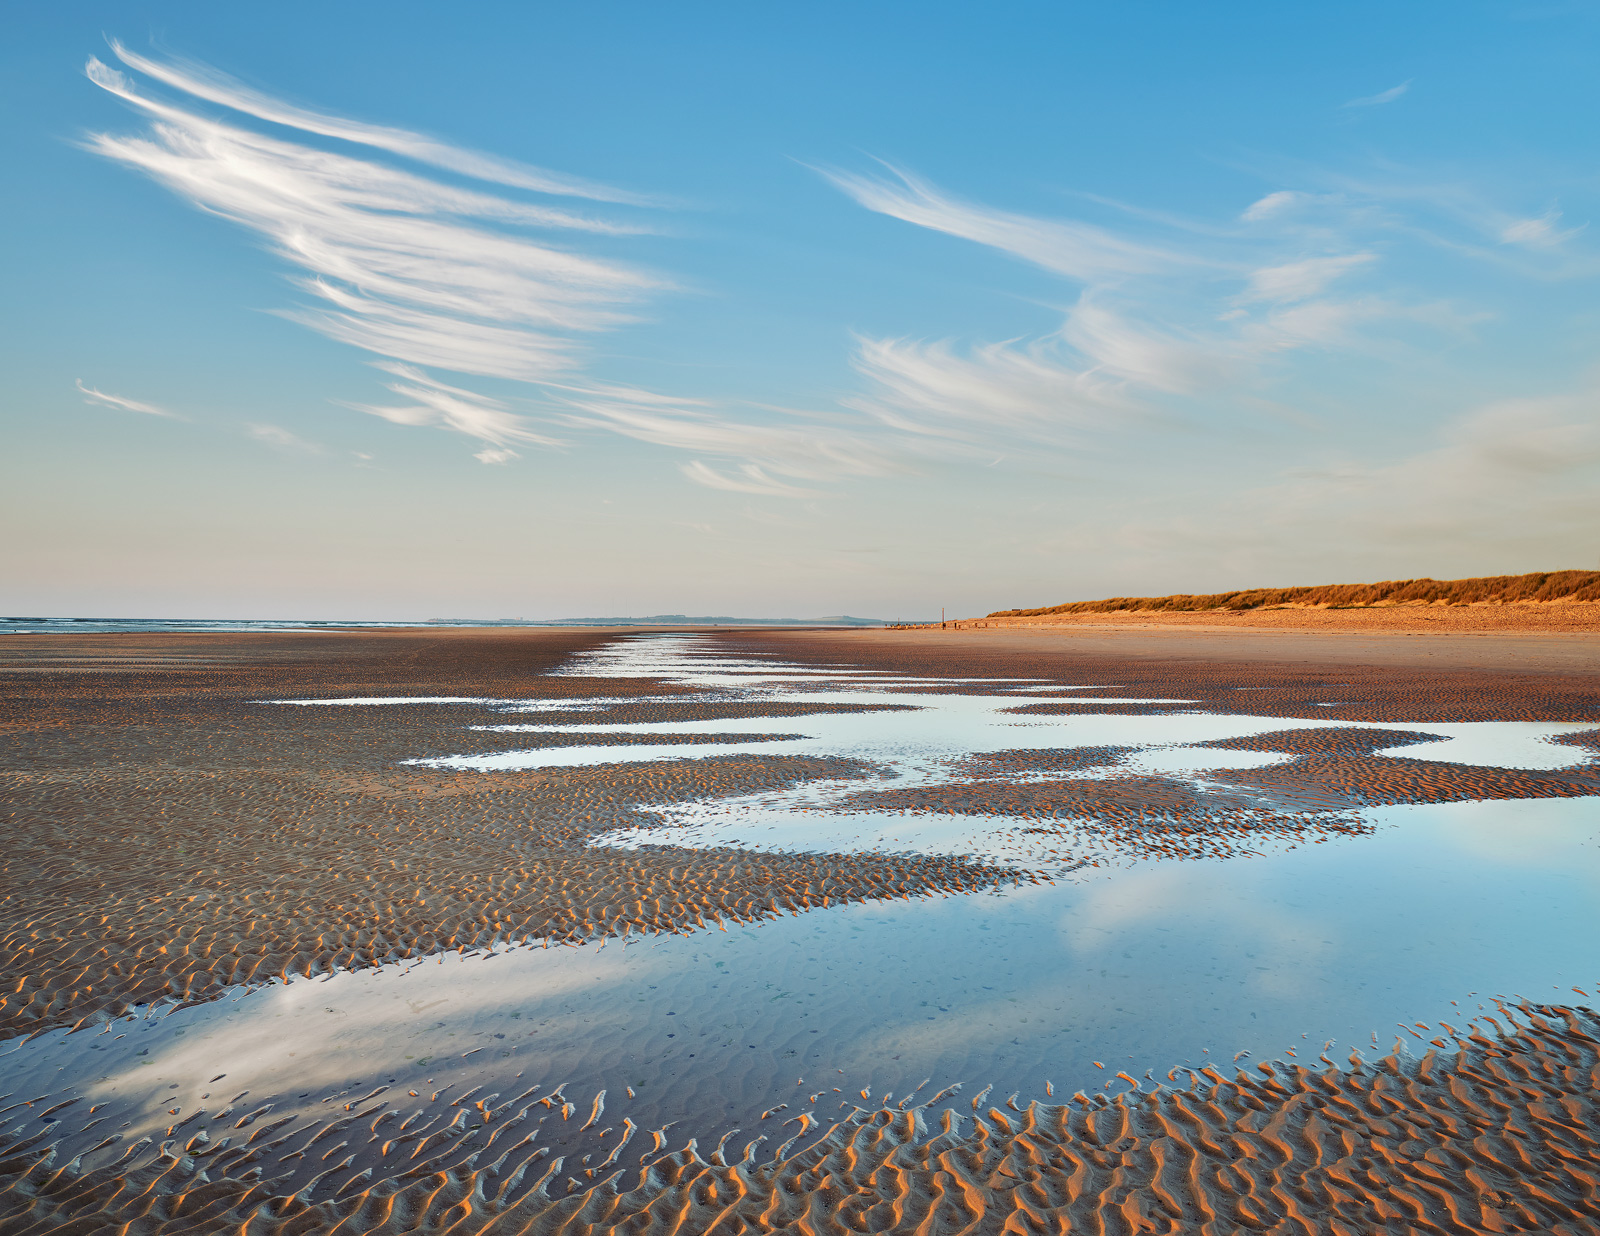 Cirrus clouds form above Findhorn's sandy beach before sunset on the Moray Coast.